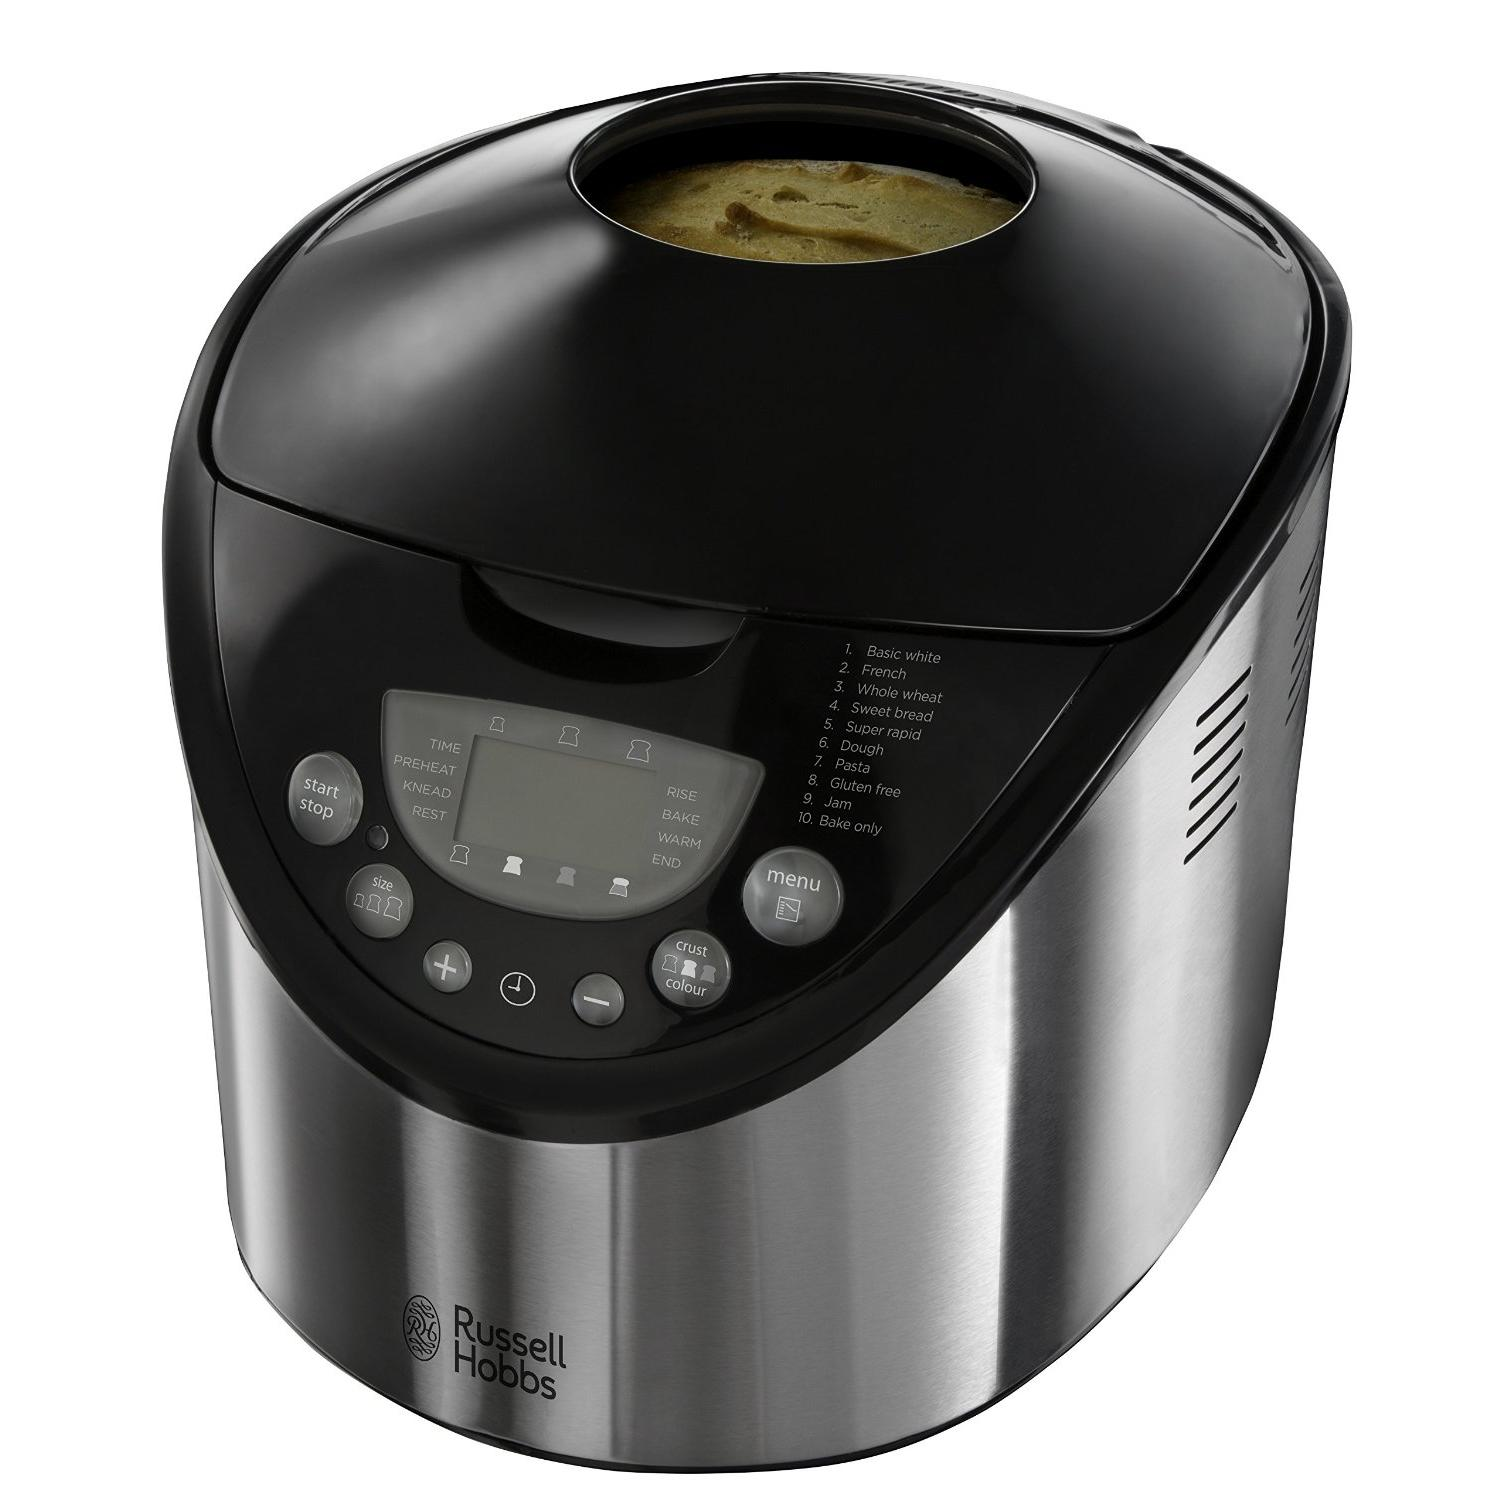 Russell hobbs - 22710 - Machine à pain 2 L 650 W